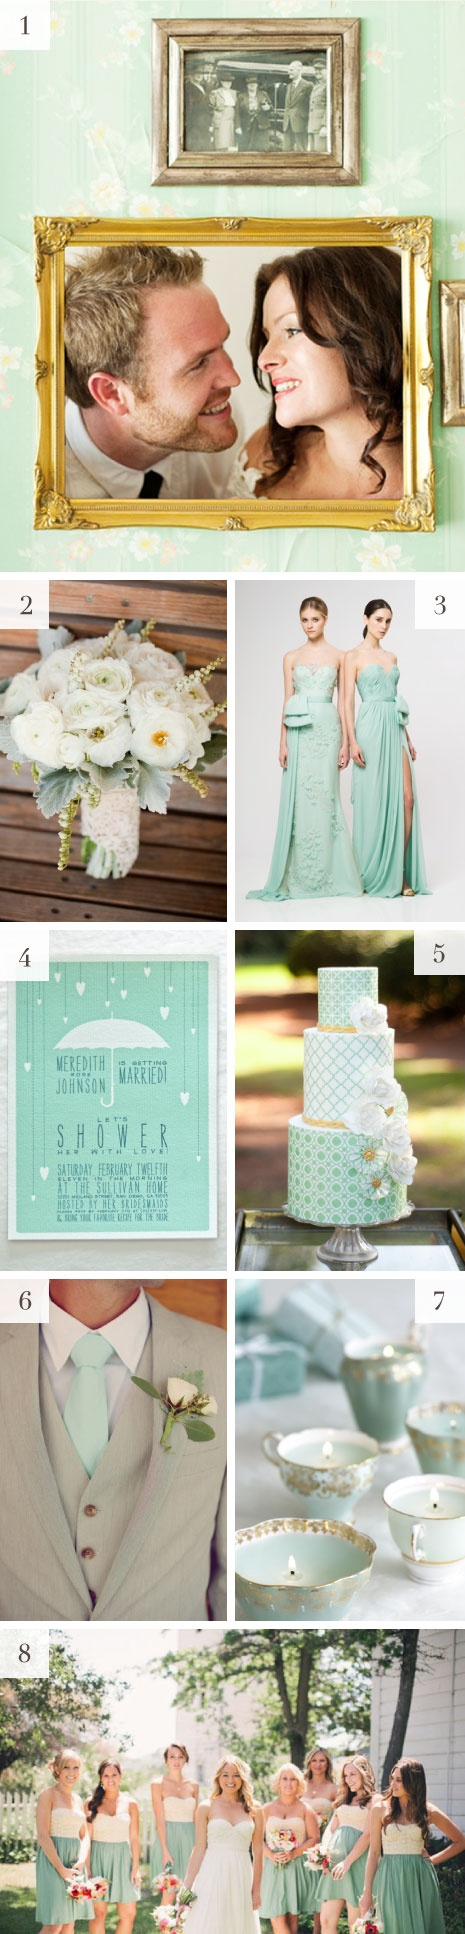 Mint wedding inspiration #color #green